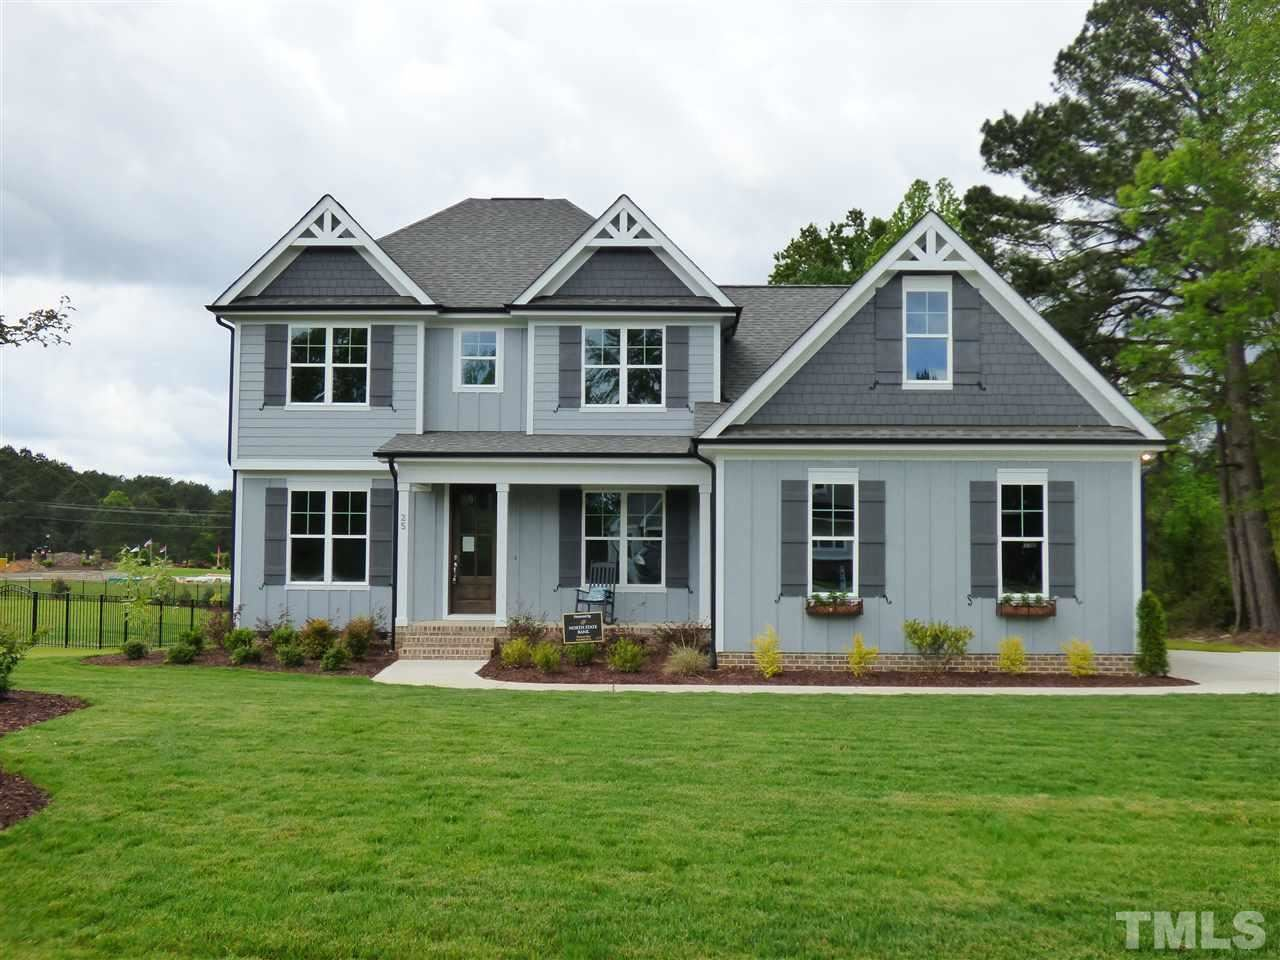 25 Keith Farms Lane, Youngsville, NC 27596 - MLS#: 2269685